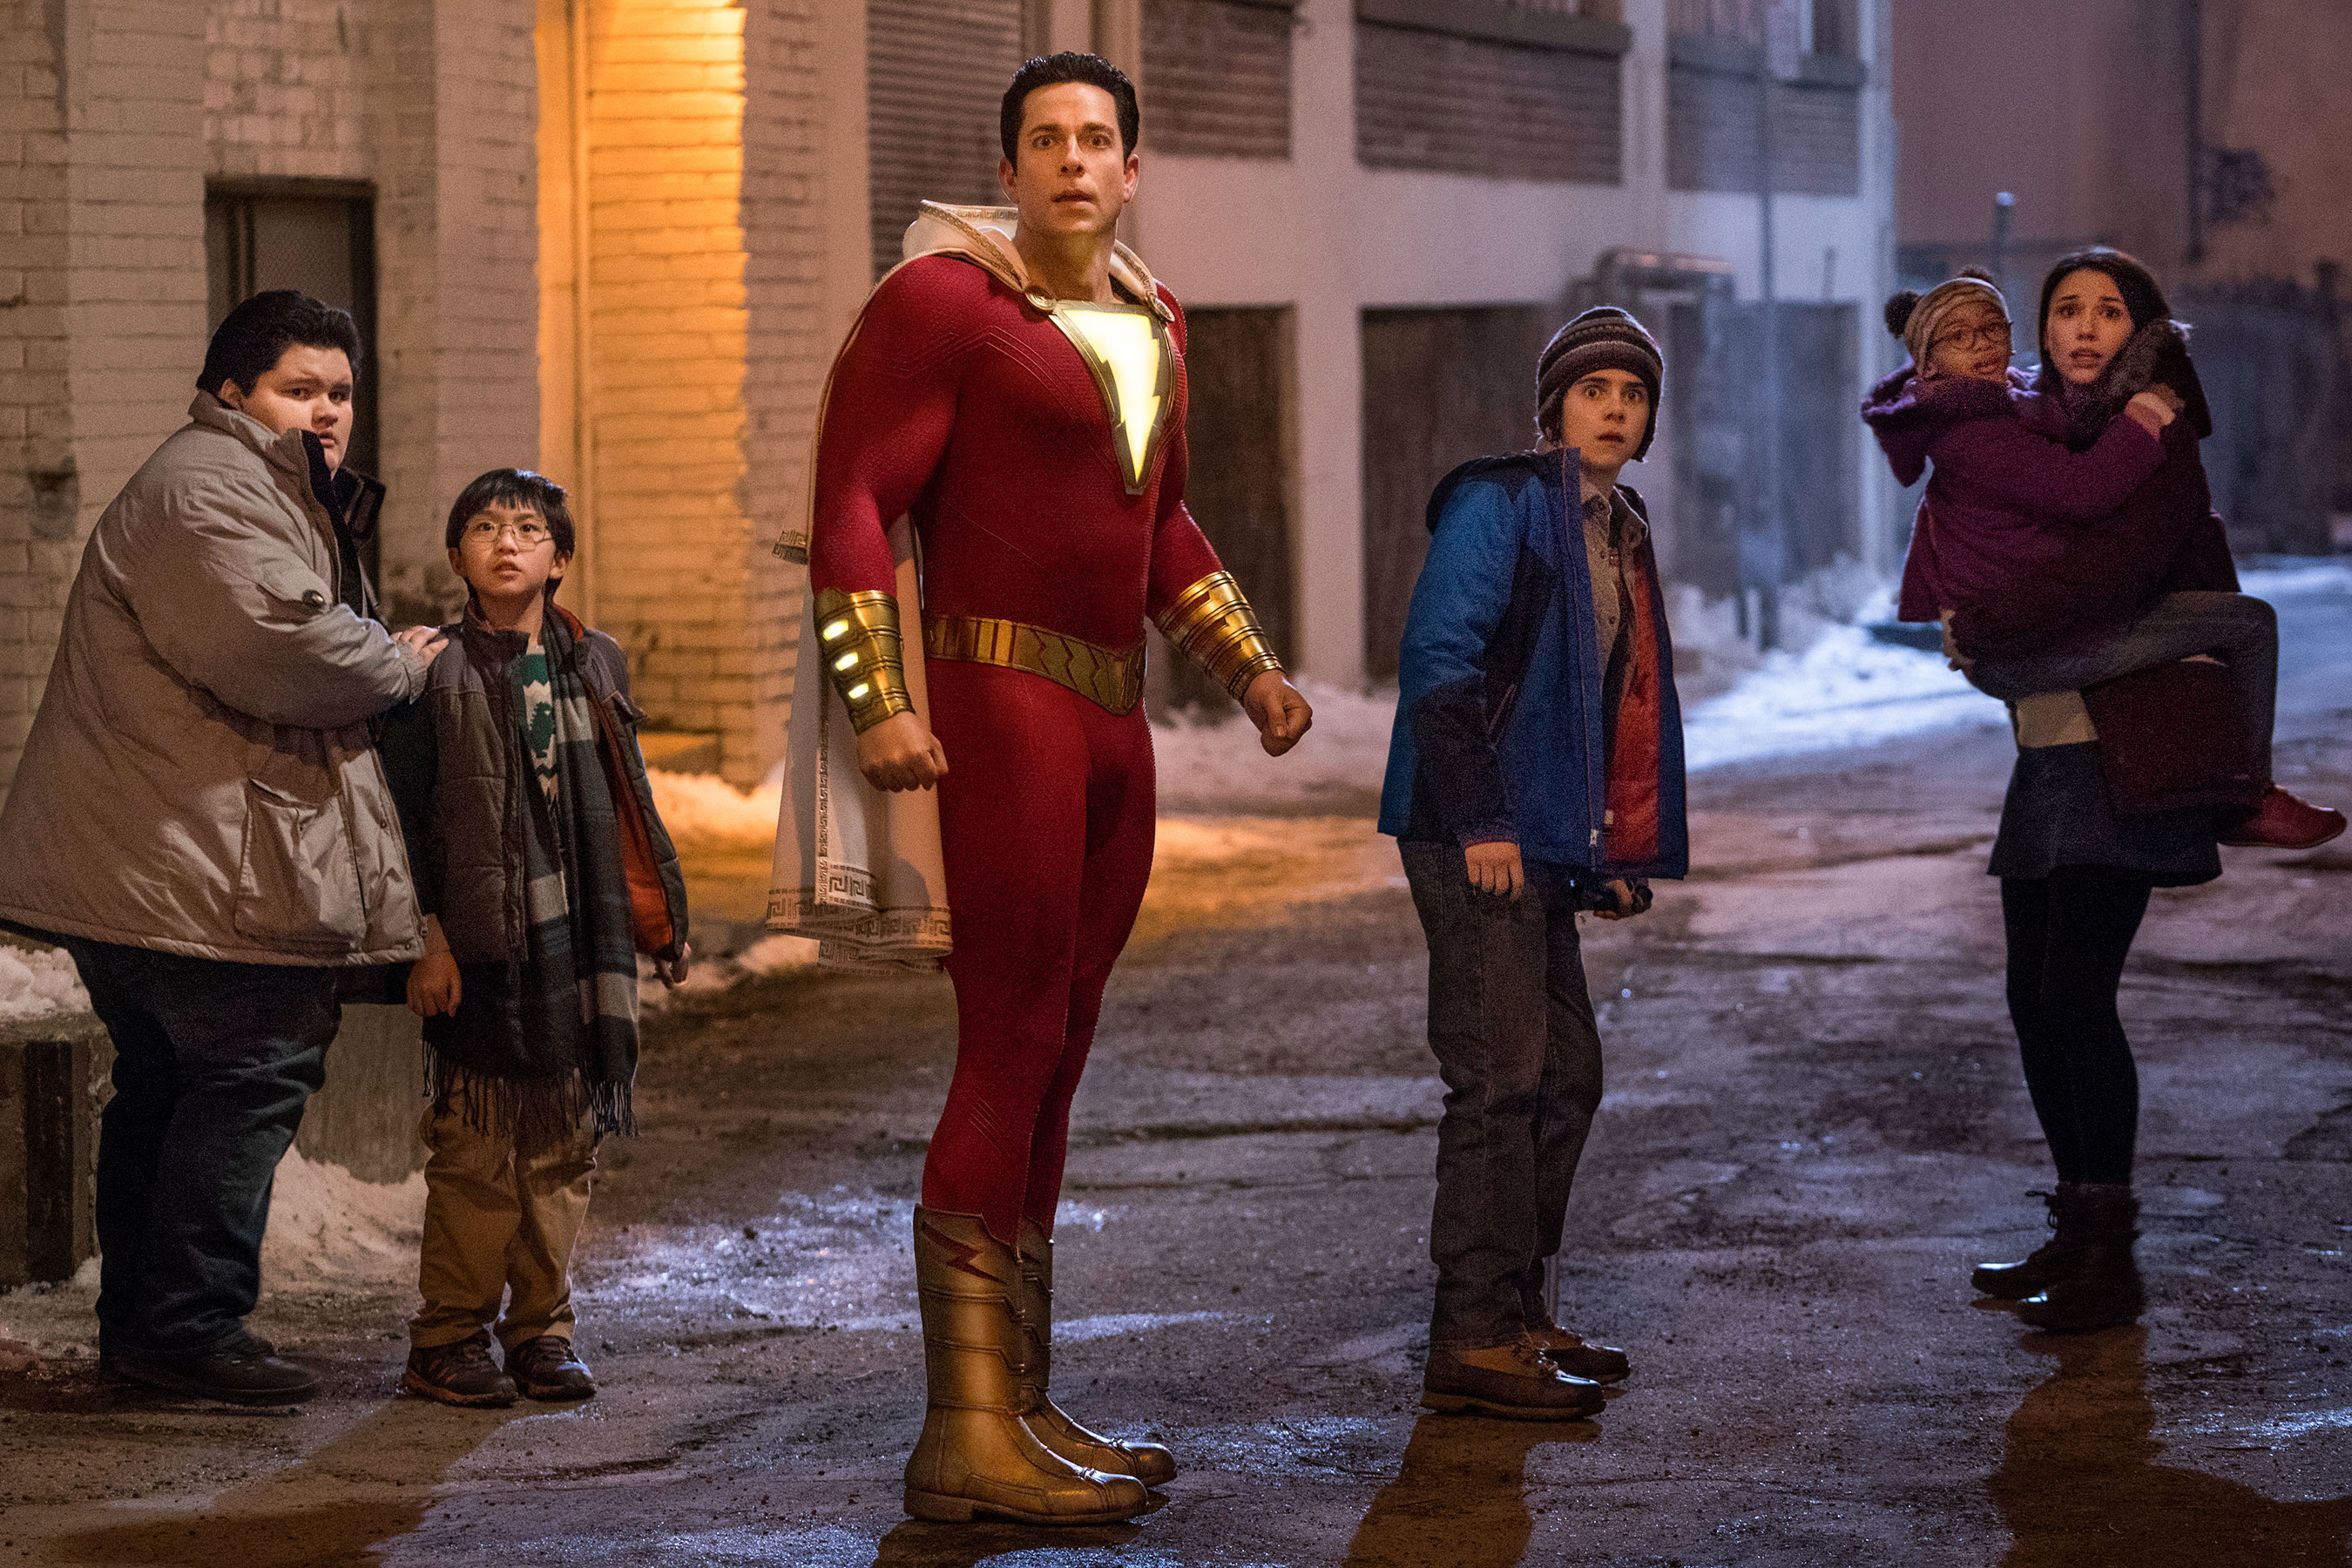 SHAZAM! cast being frightened by something... who can guess what it is?